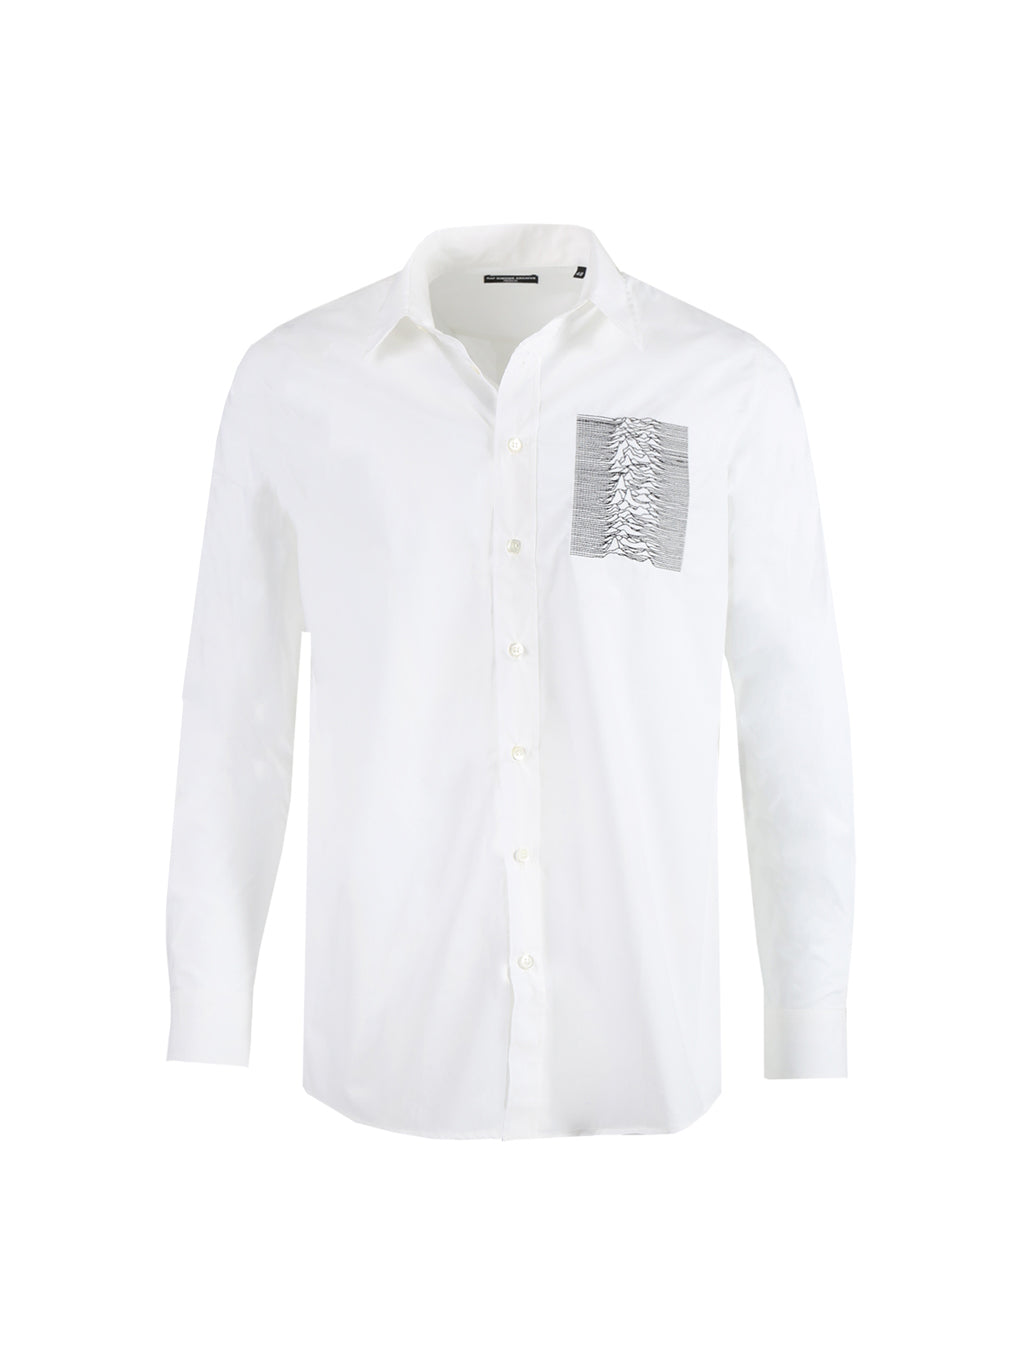 White Archive Redux Joy Division Button Down Shirt